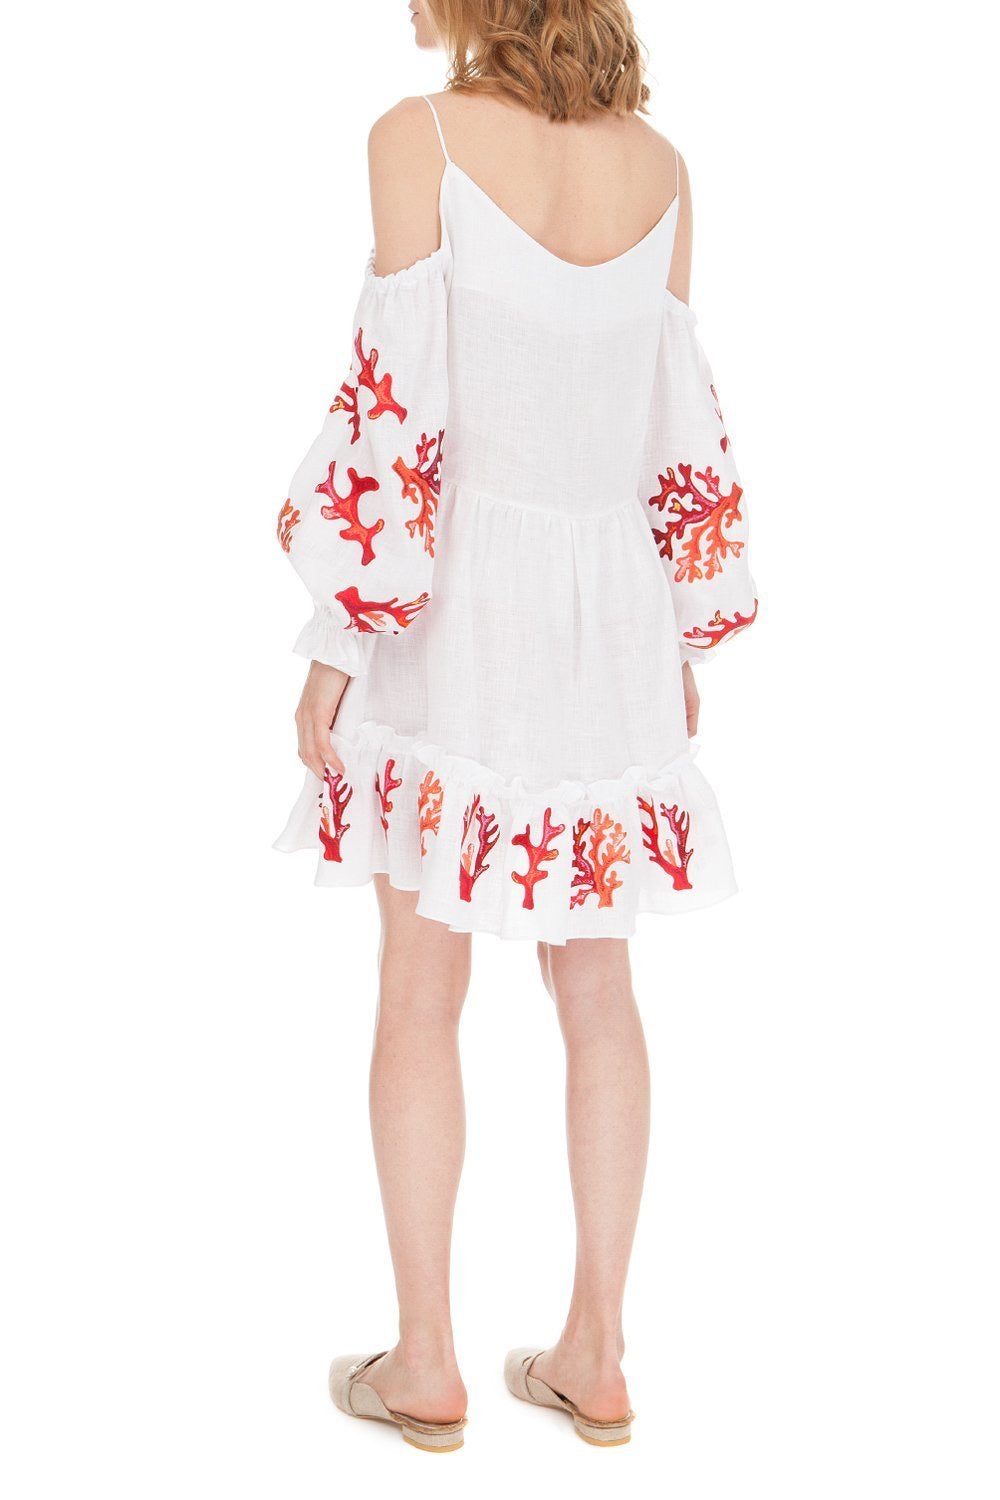 Embroidered Linen Mini Dress , Lee Pfayfer - Moda Boheme